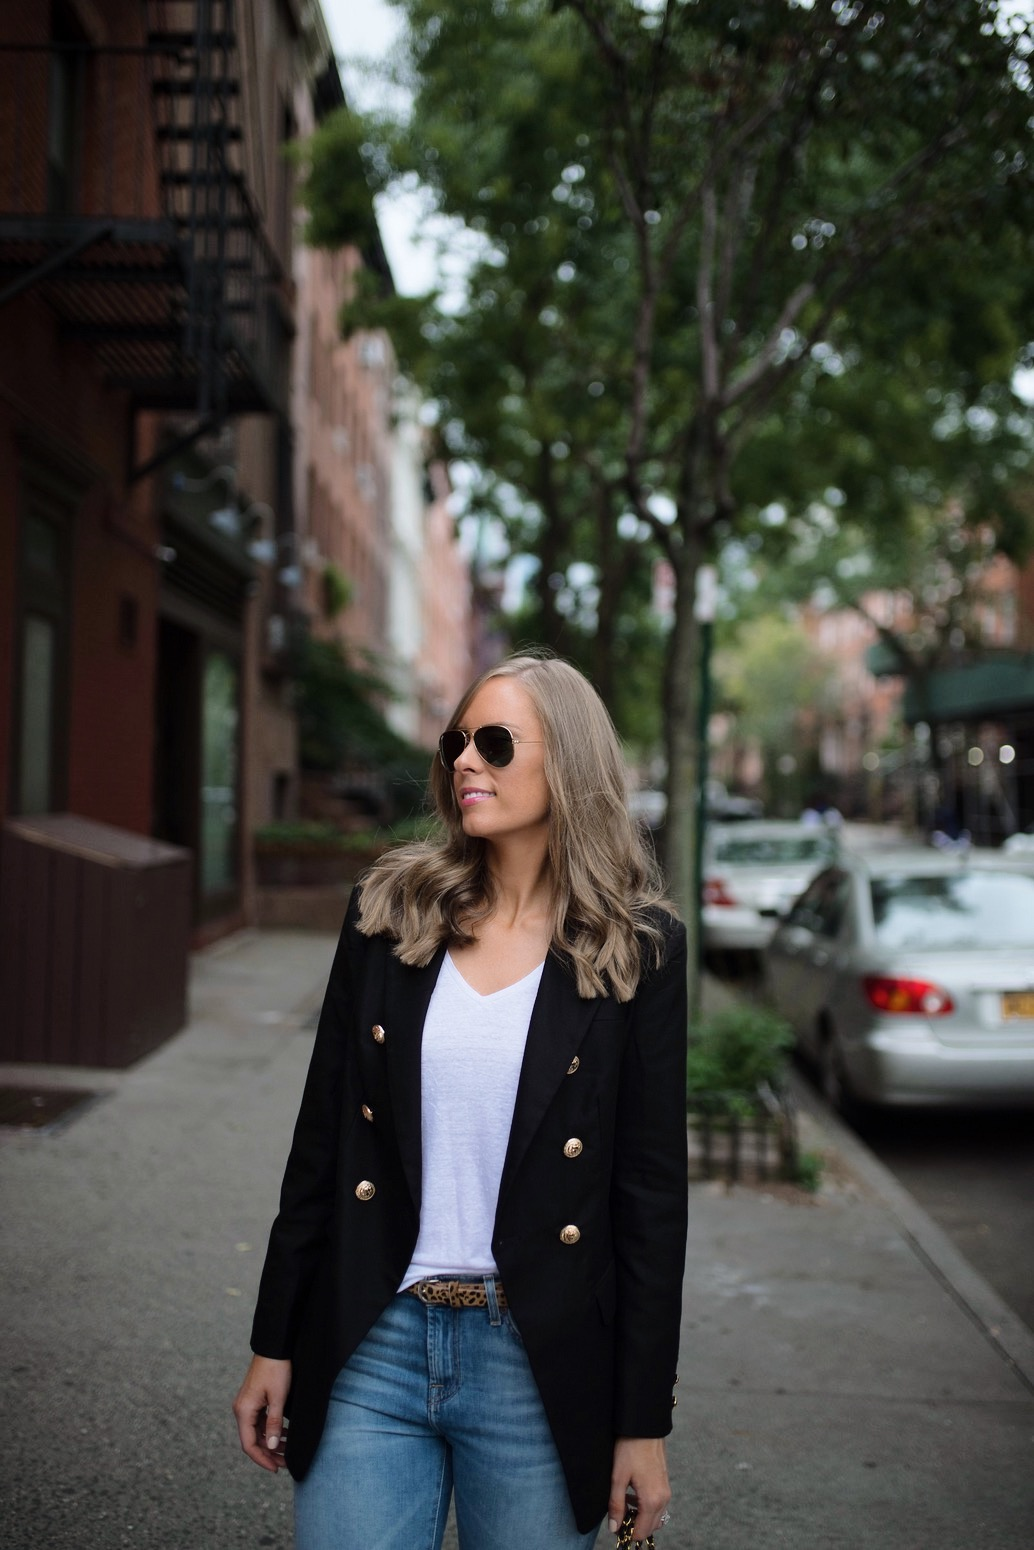 casual-outfit-ideas-blue-distressed-jeans-white-sneakers-balmain-blazer-chanel-bag-fashion-blogger-new-york-street-style-outfit-lauren-slade-style-elixir-blog-7